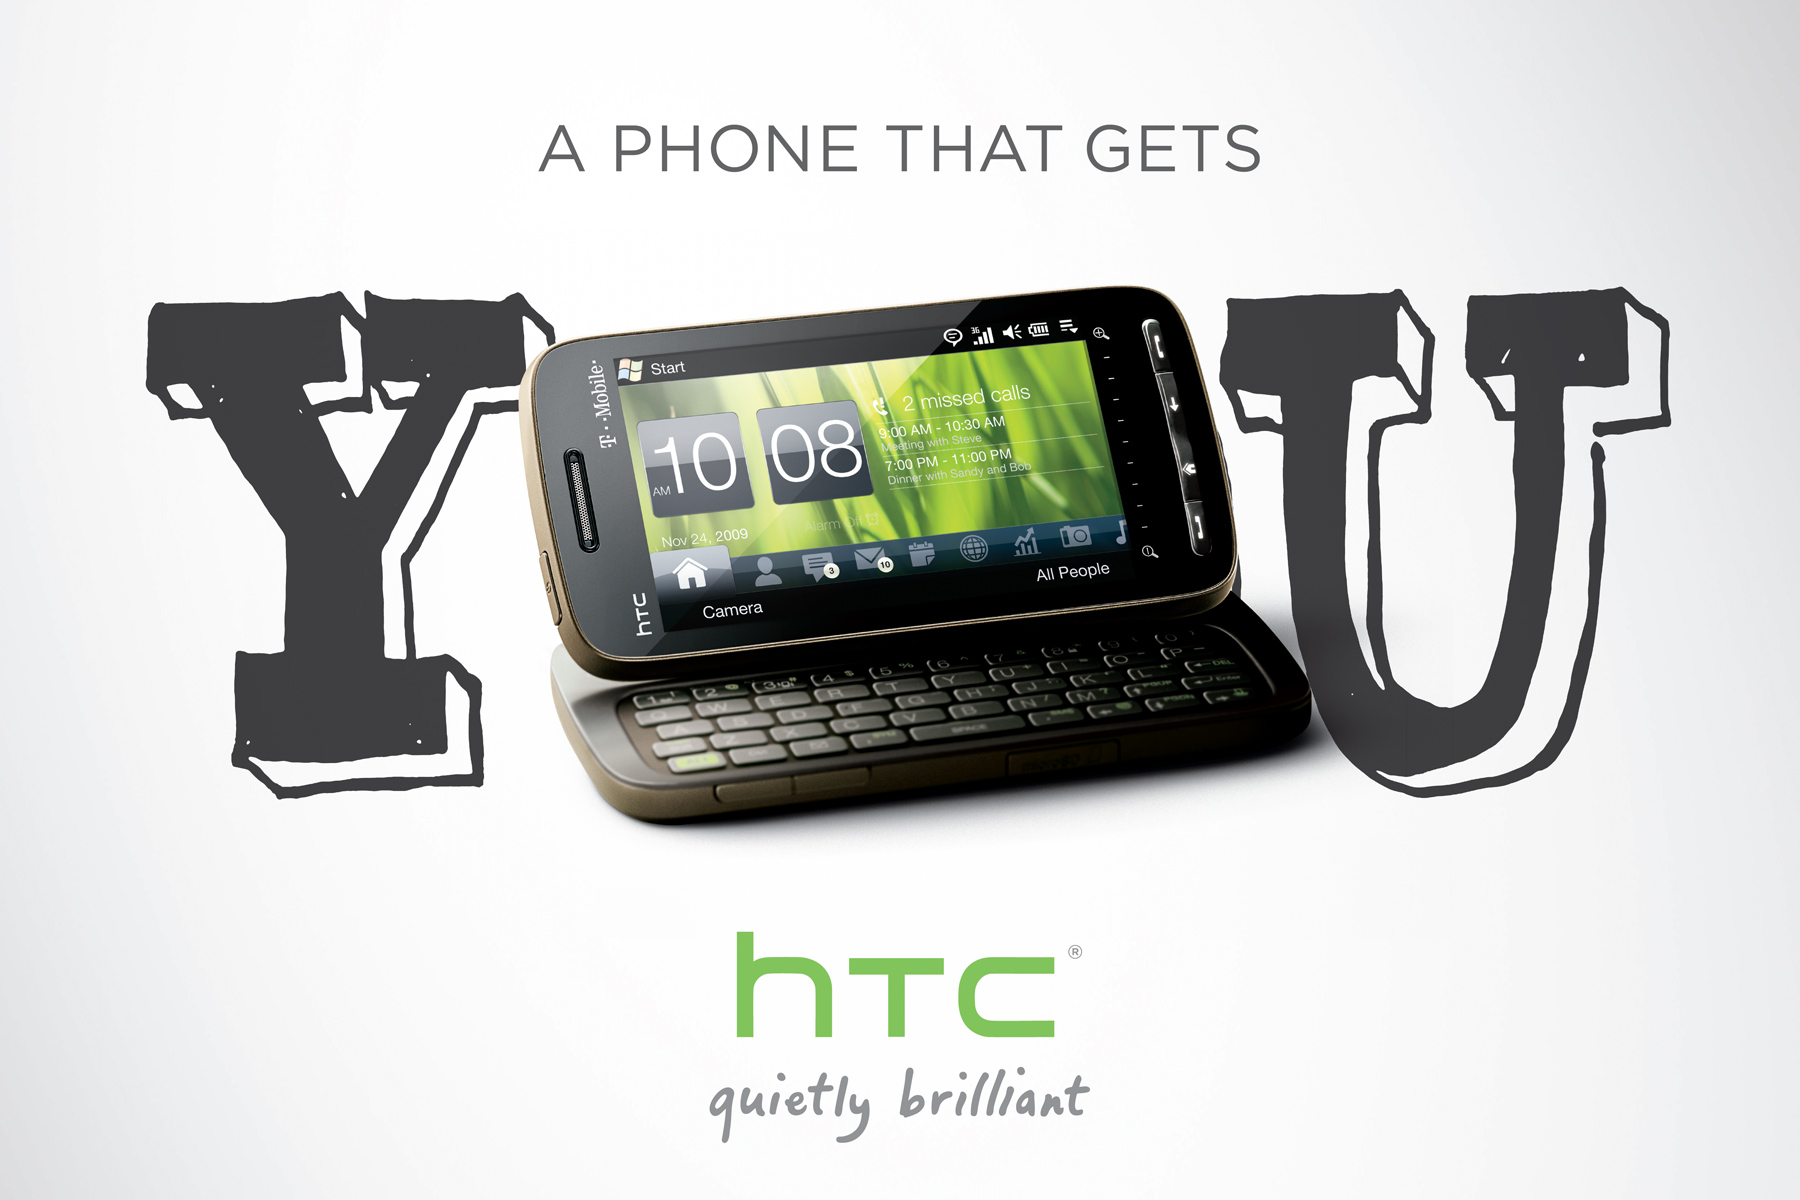 HTC-single-phone